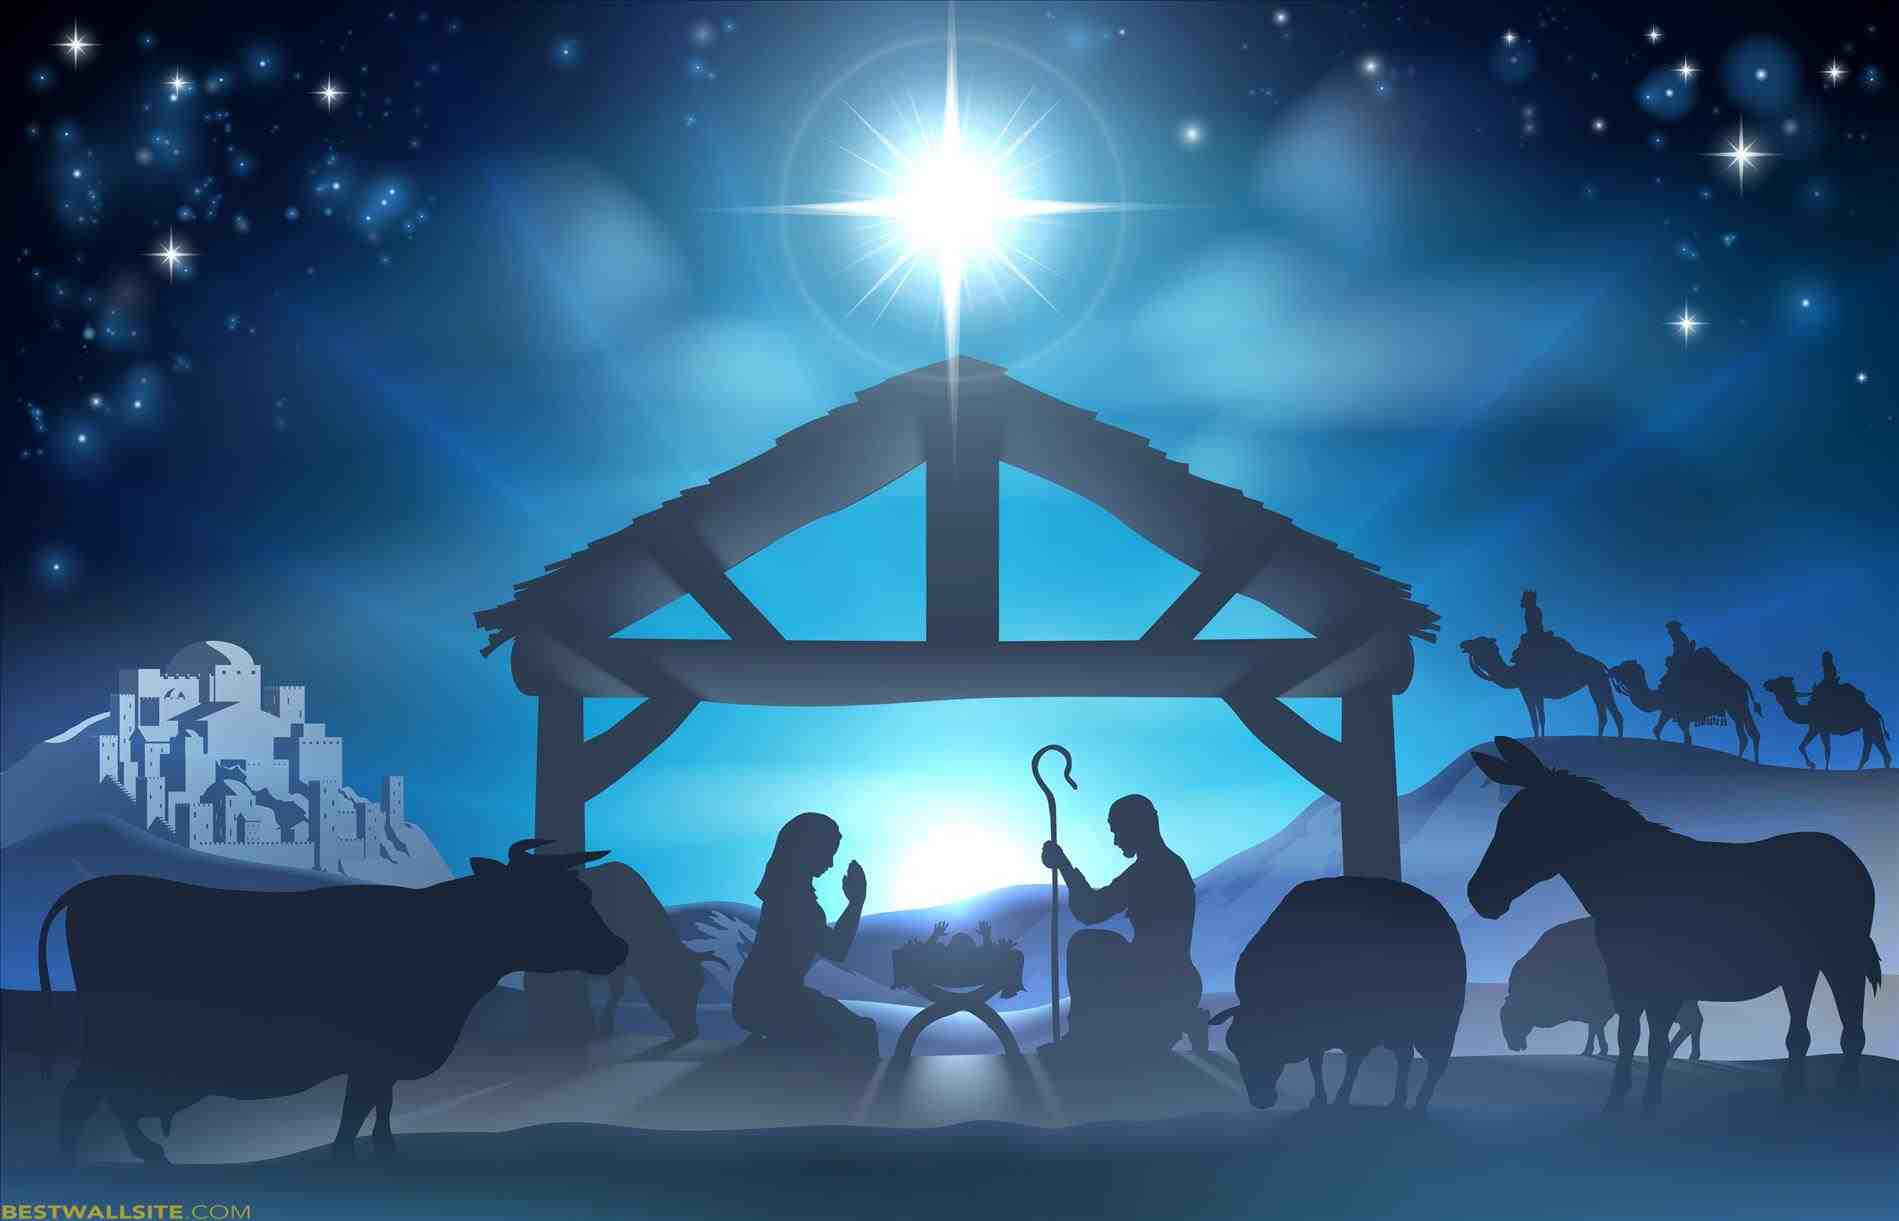 advent christmas manger wallpaper time nativity scene 1899x1221